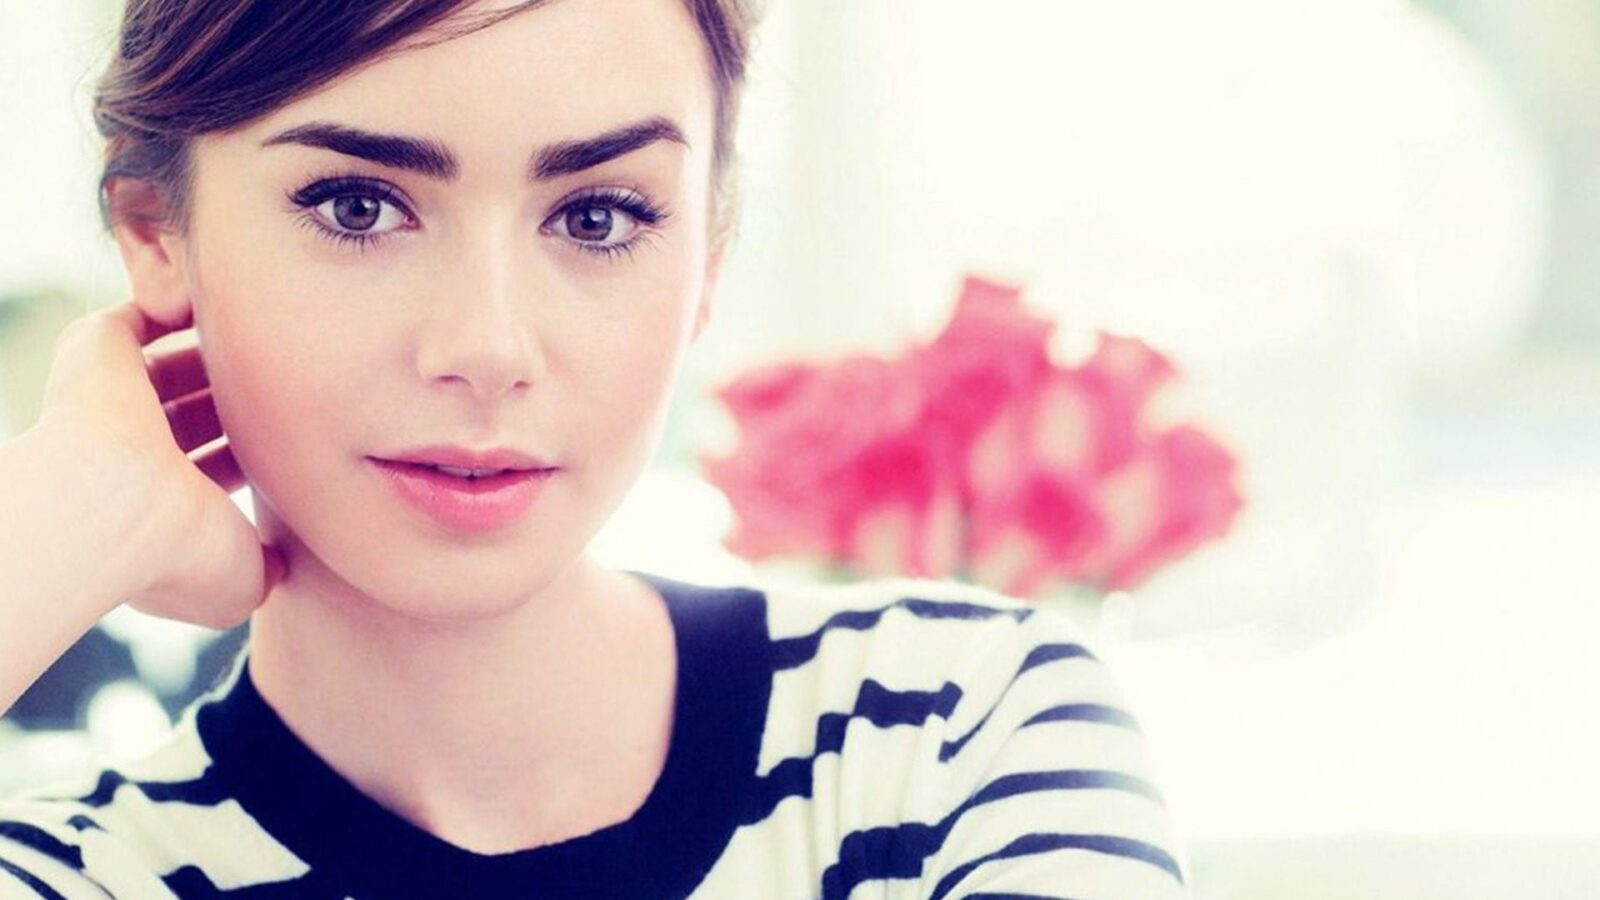 34+ lily collins hd wallpapers high quality download